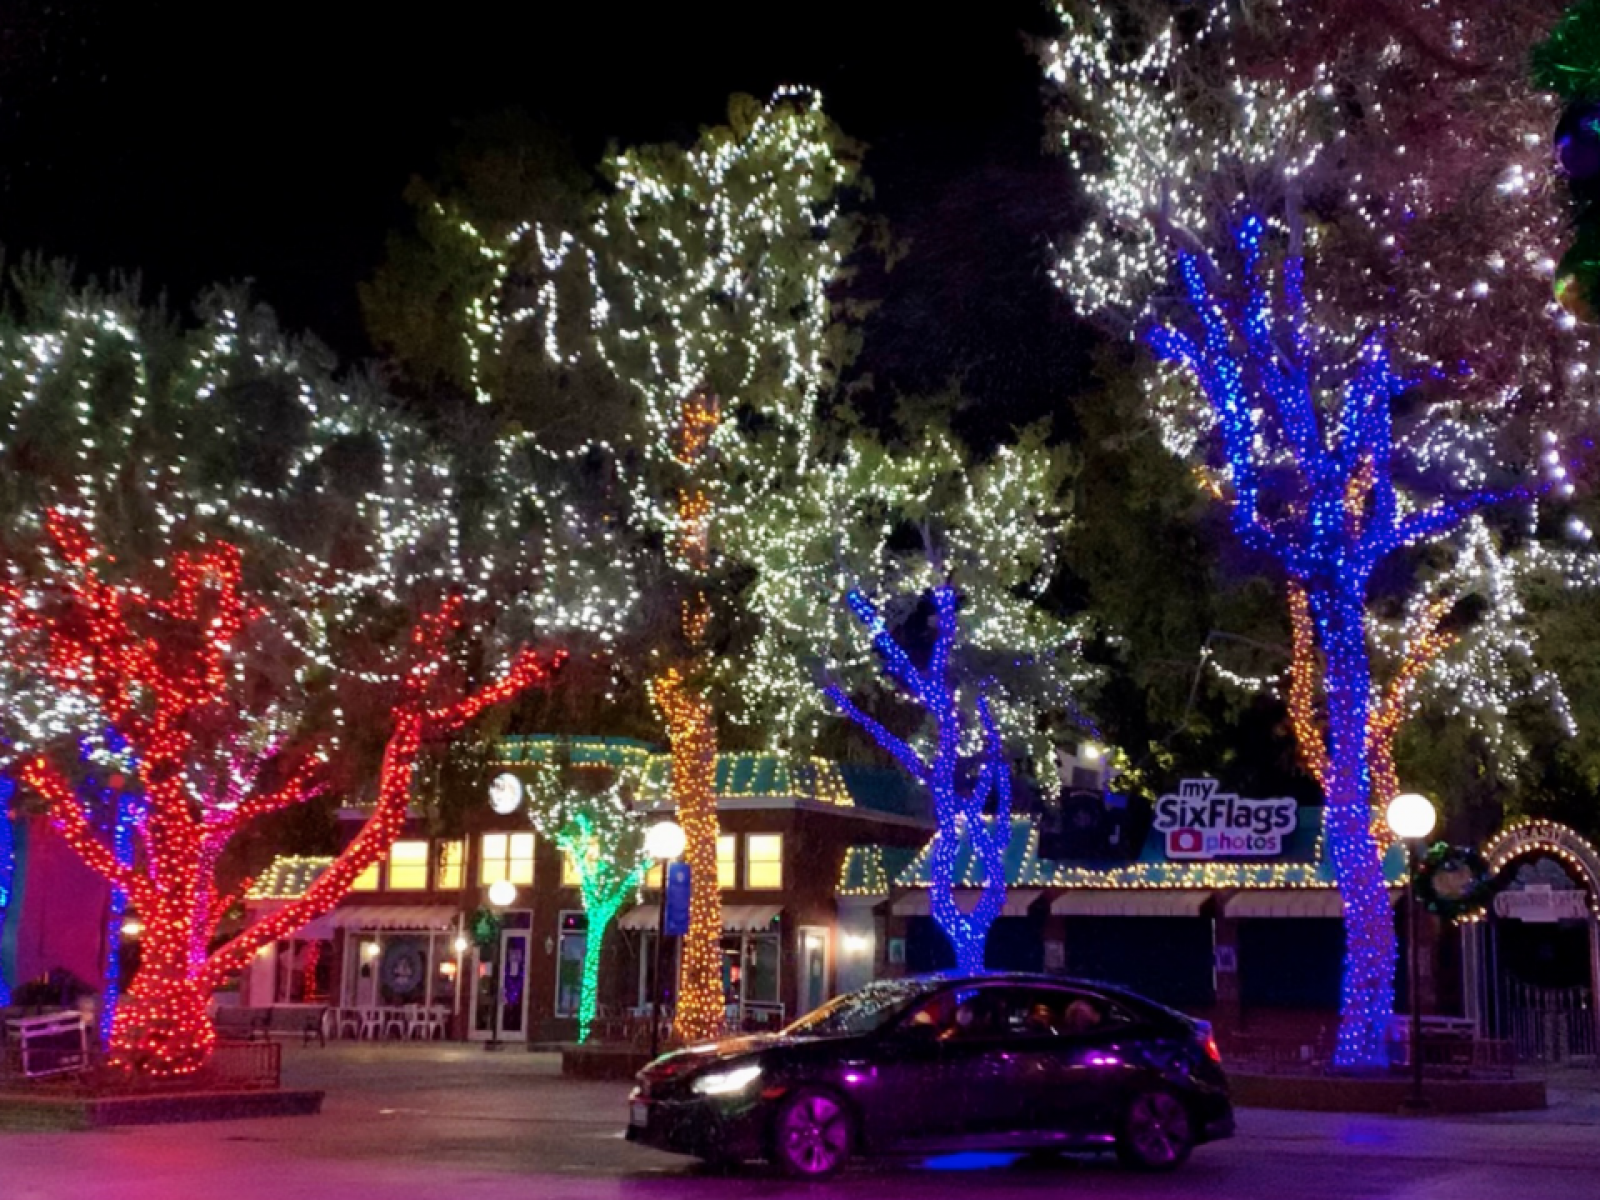 Six Flags Holiday 2020